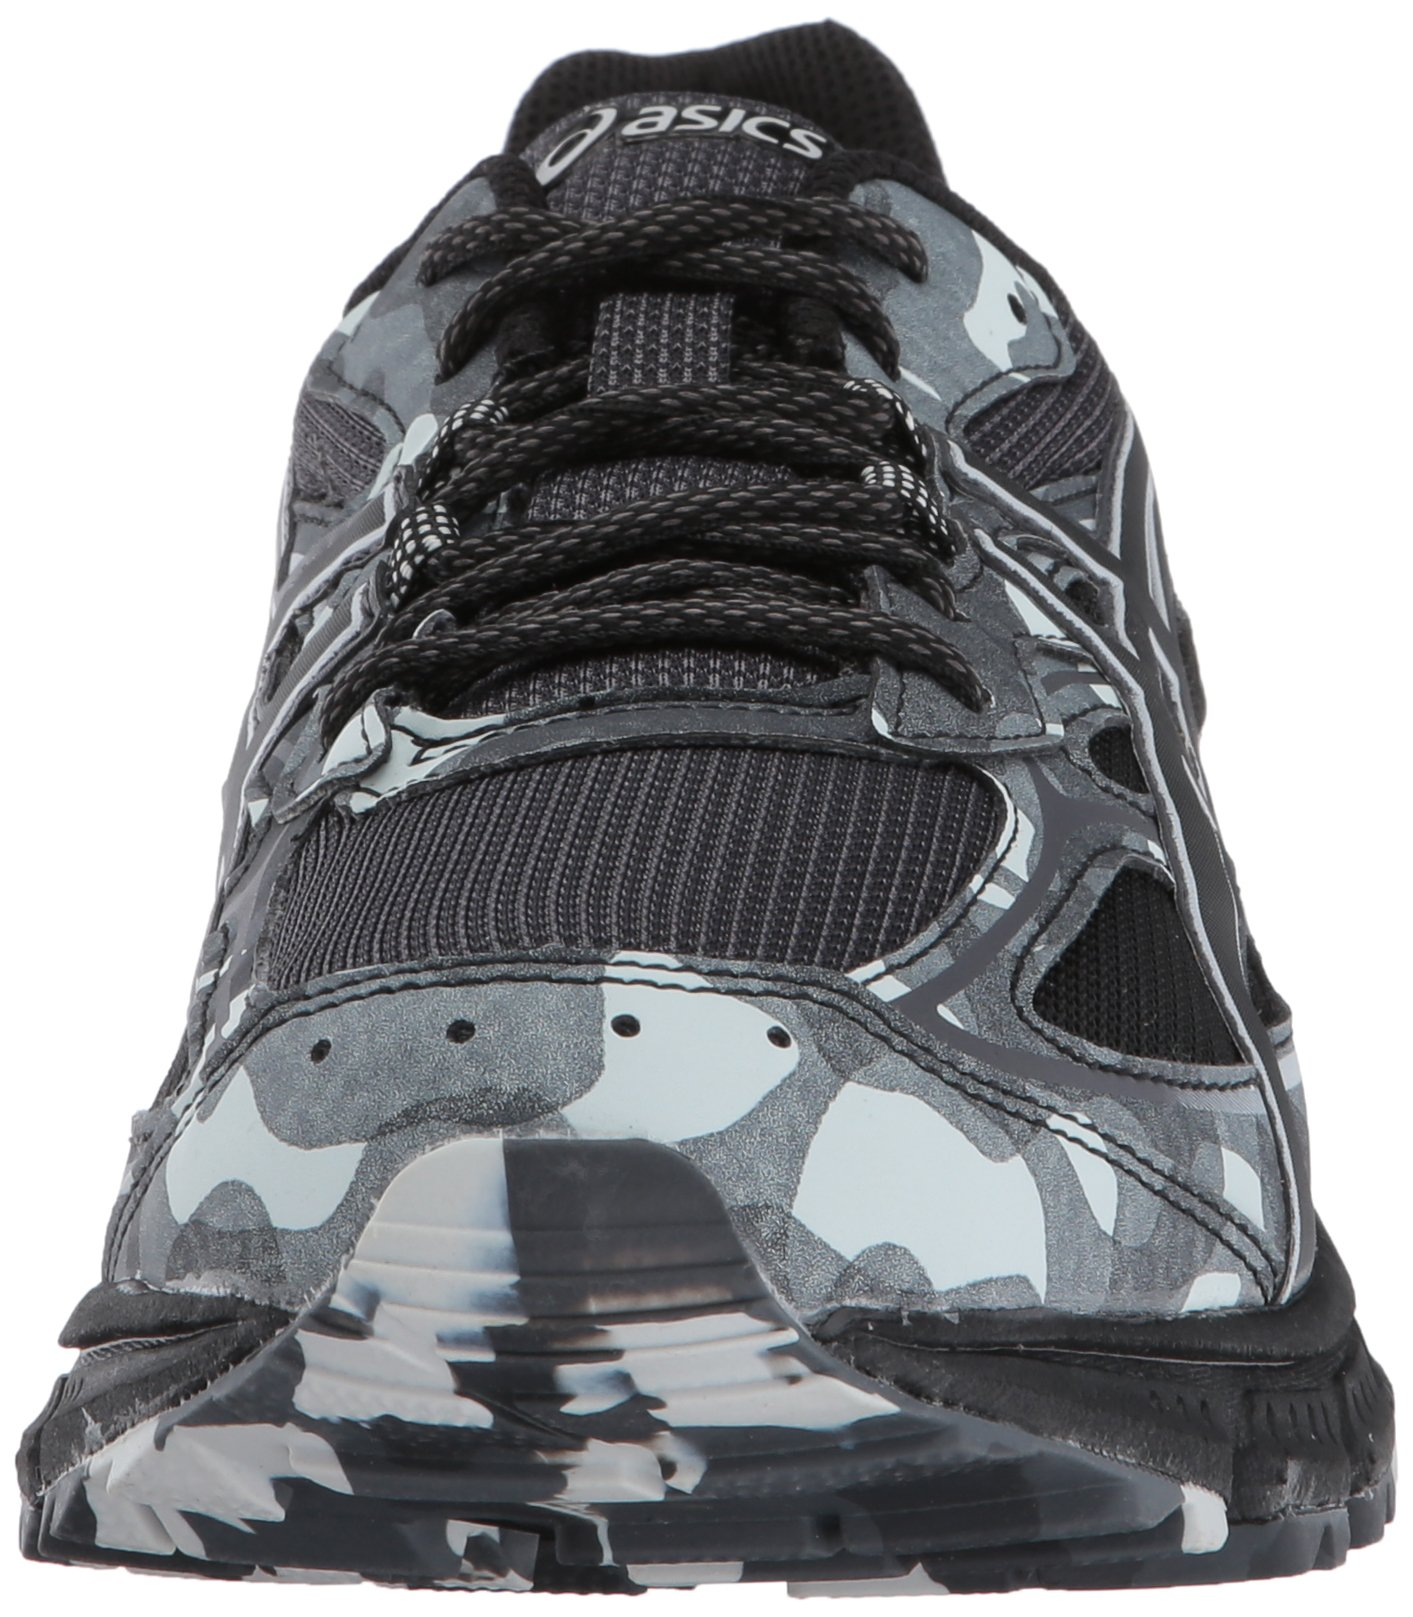 newest collection f615f 1e250 ASICS Men's Gel-scram 3 Trail Runner - GEL-Scram 3-M ...